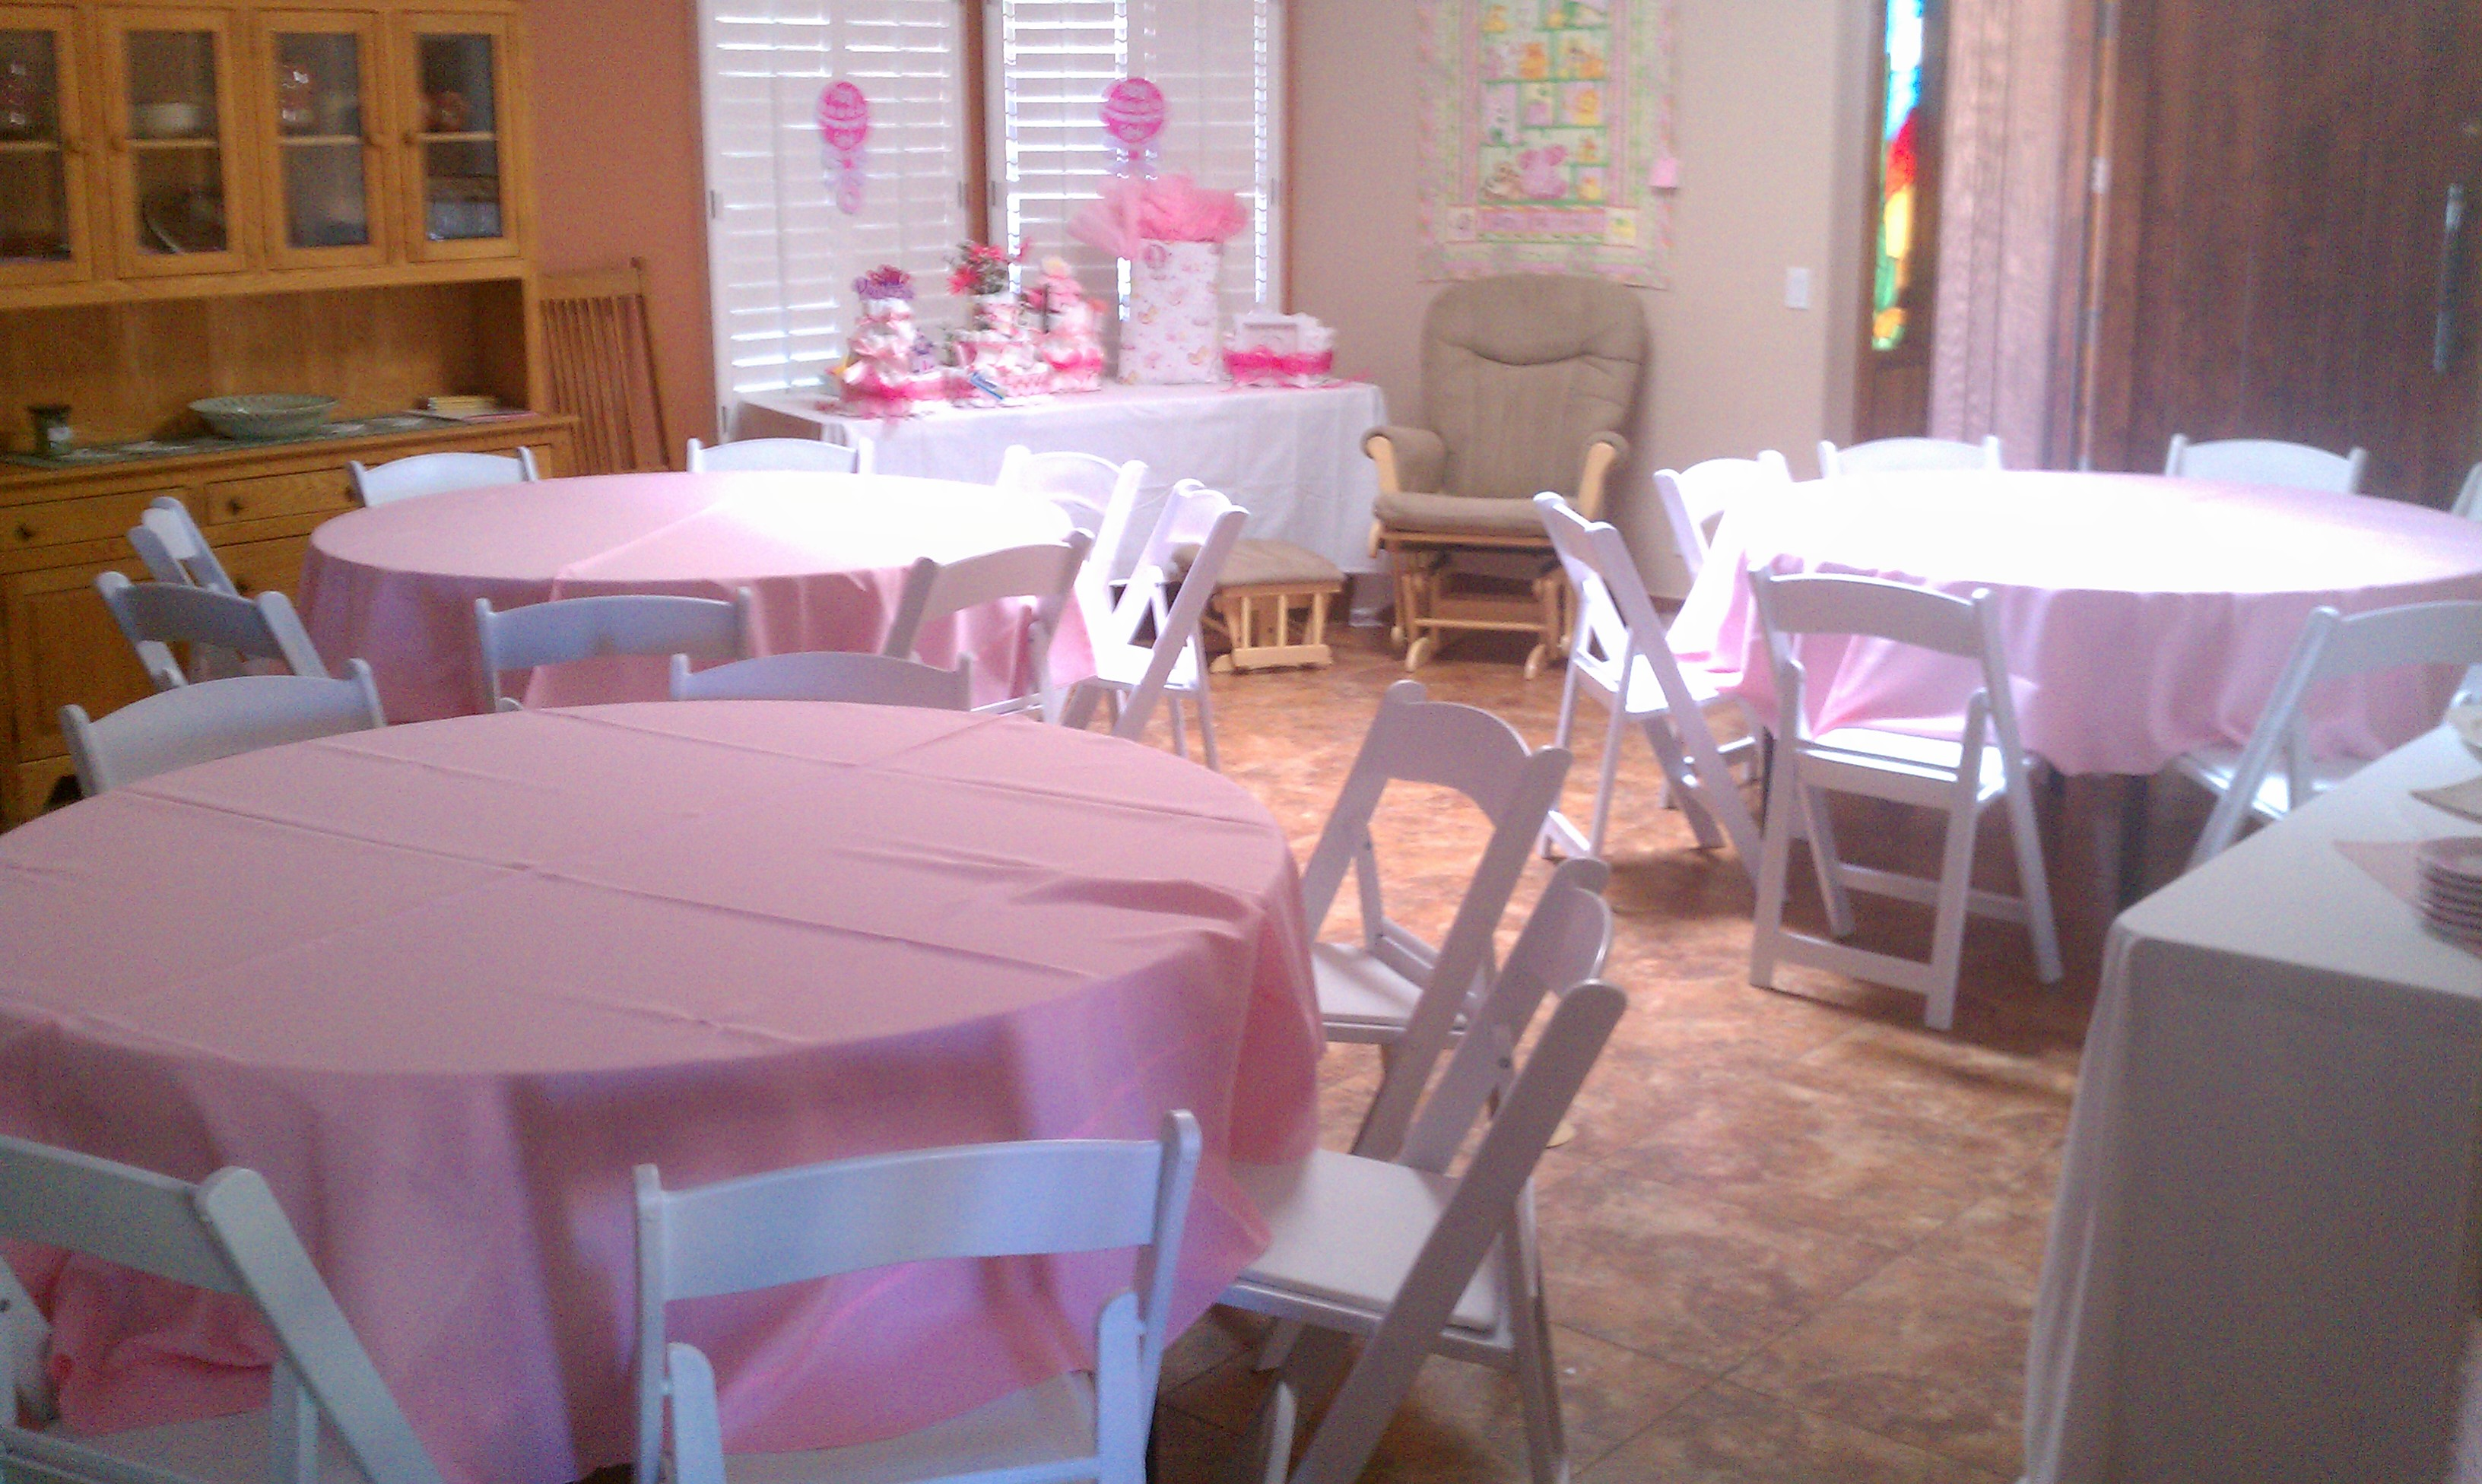 Where Can I Rent Tables And Chairs Tables Chairs Pink Linens Baby Shower Royalty Rentals